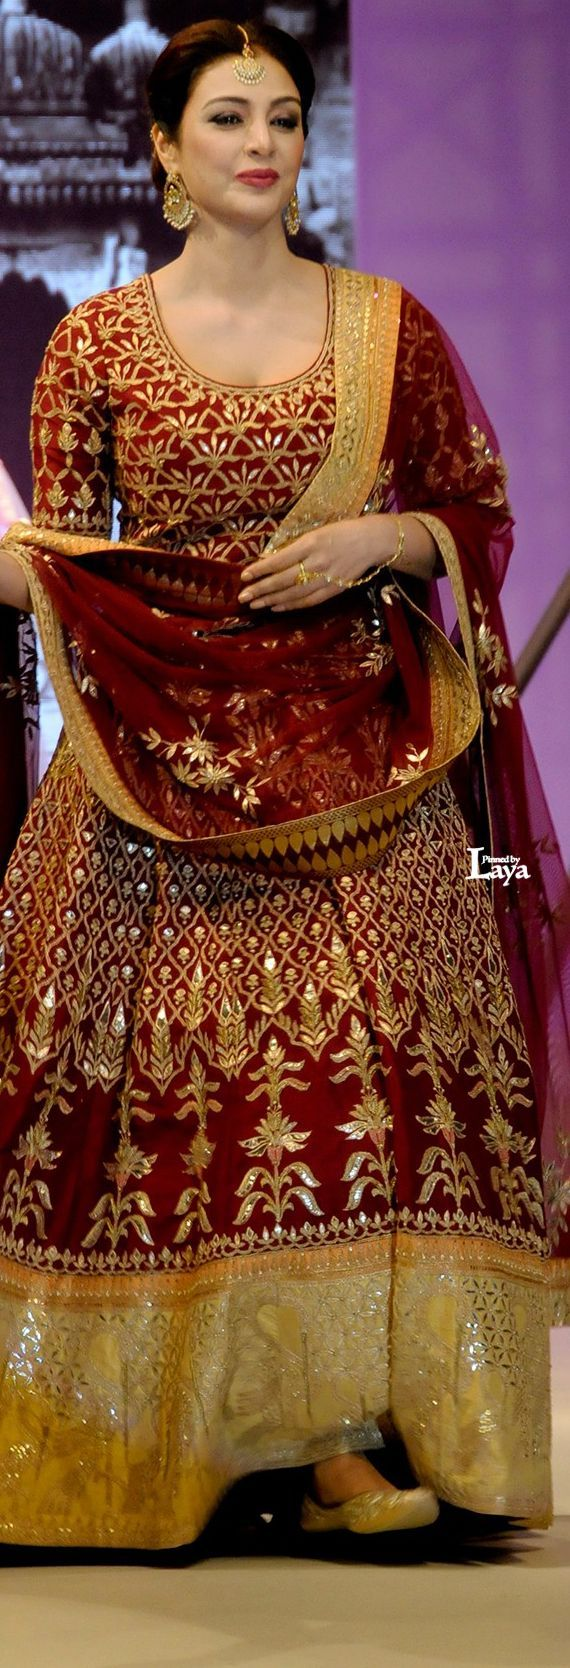 [Click on the photo to book your wedding photographer] Indian Bride | Asian Wedding Bride Indian Bride Makeup | Indian Bride Lehenga | Indian Bride Inpiration Curated By Best Indian Candid & Destination Wedding Photography: Magica By Rish Agarwal